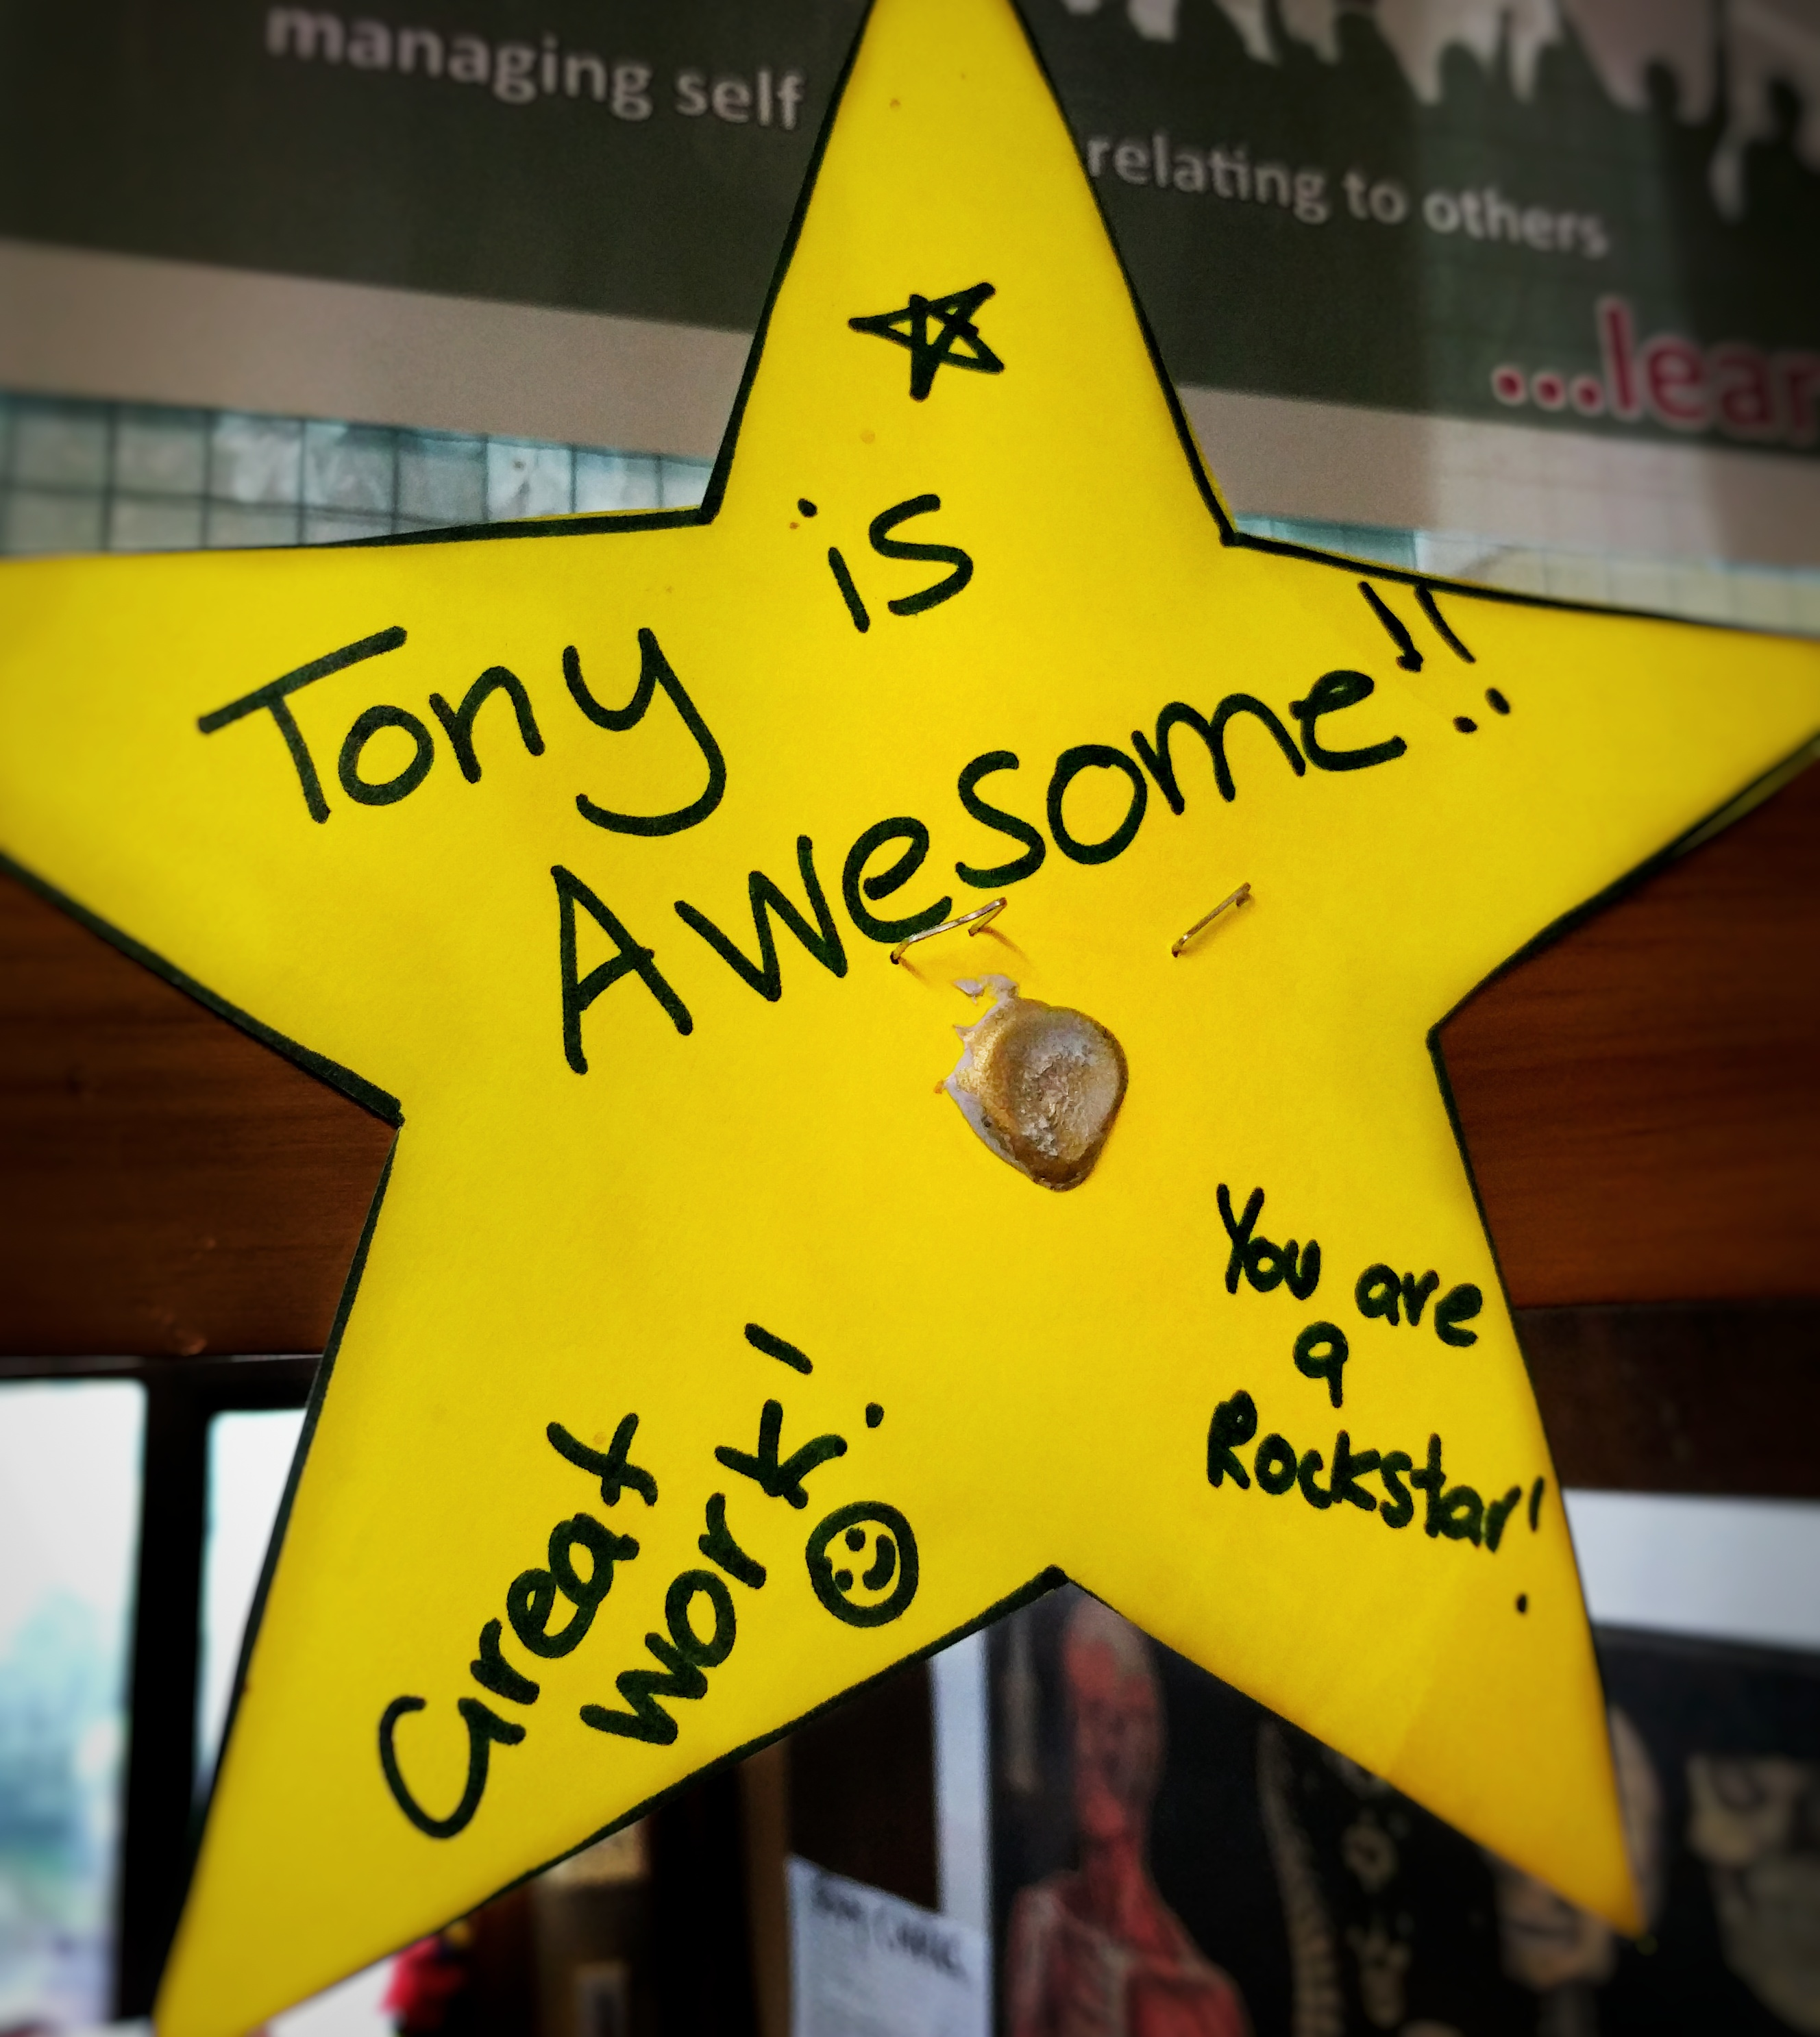 'Tony is awesome' star sign